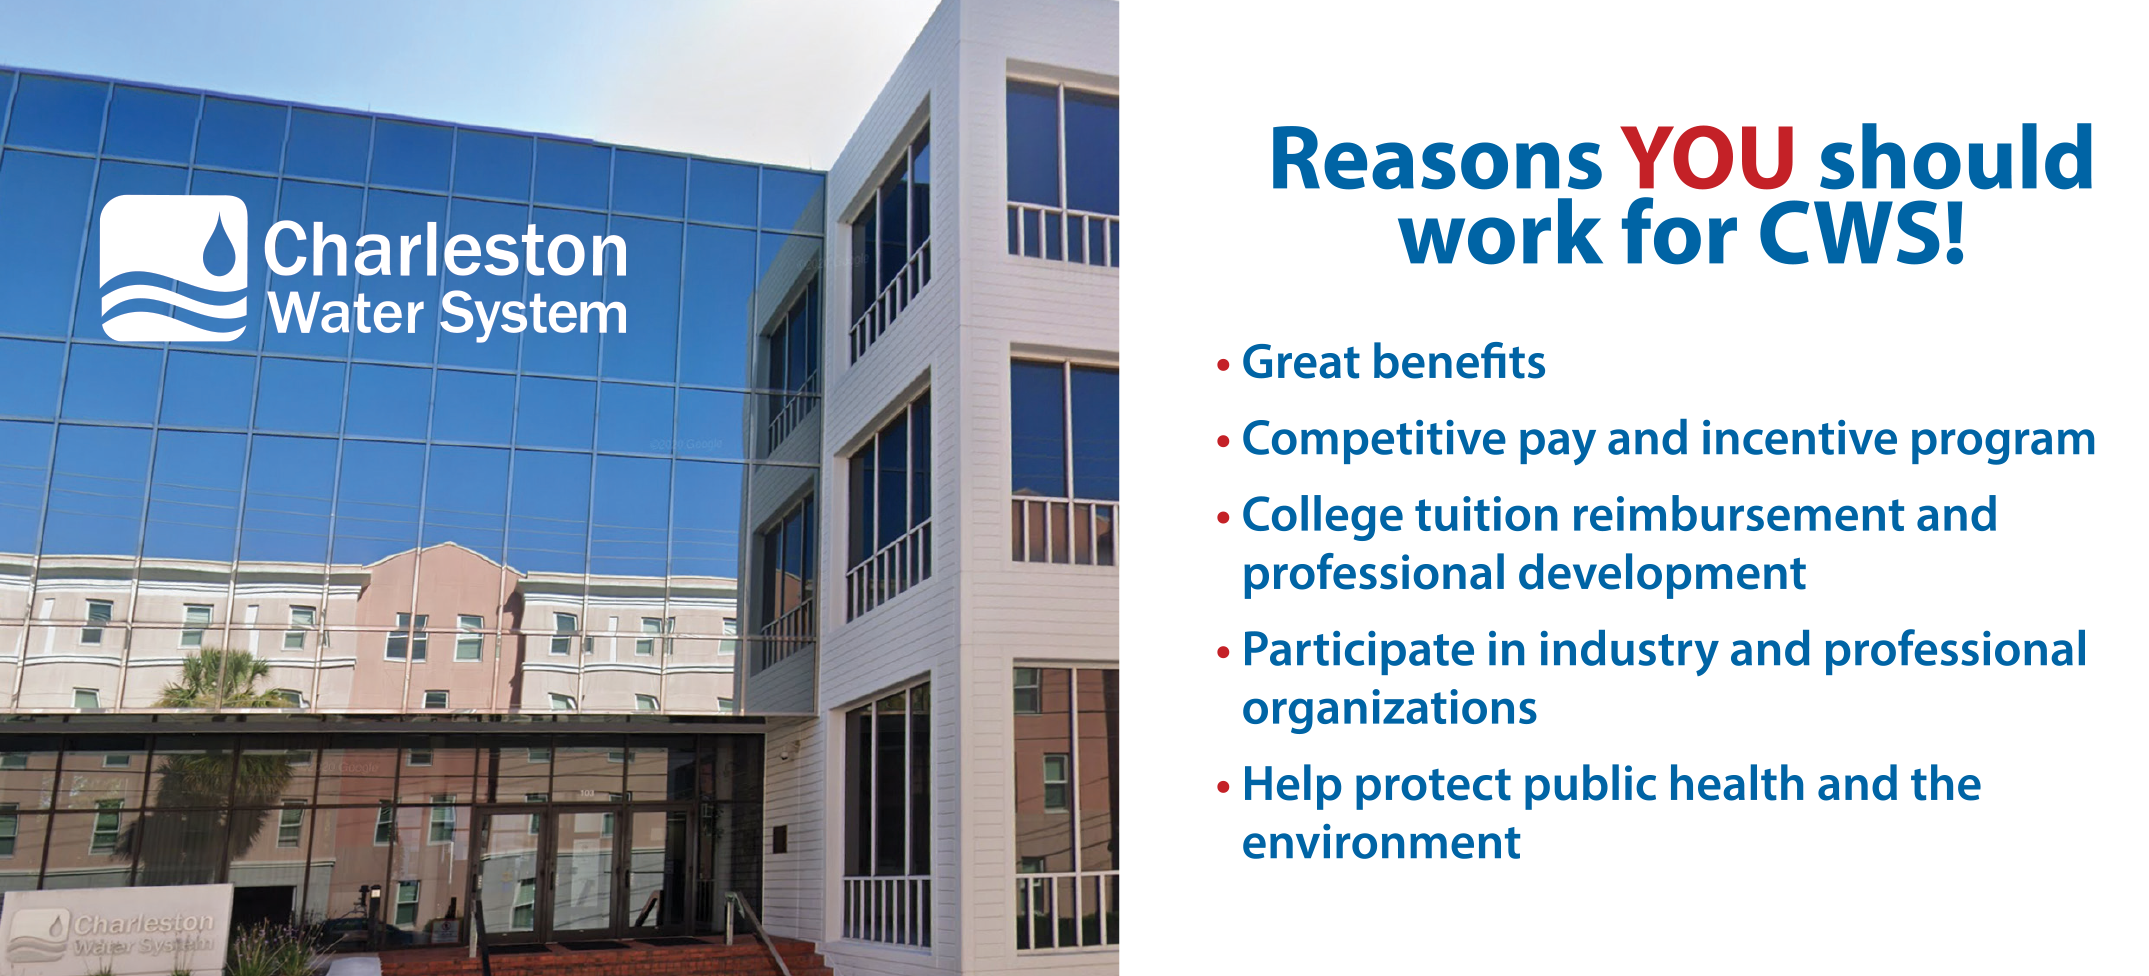 Charleston Water System offers great benefits and a chance to work to improve the environment.